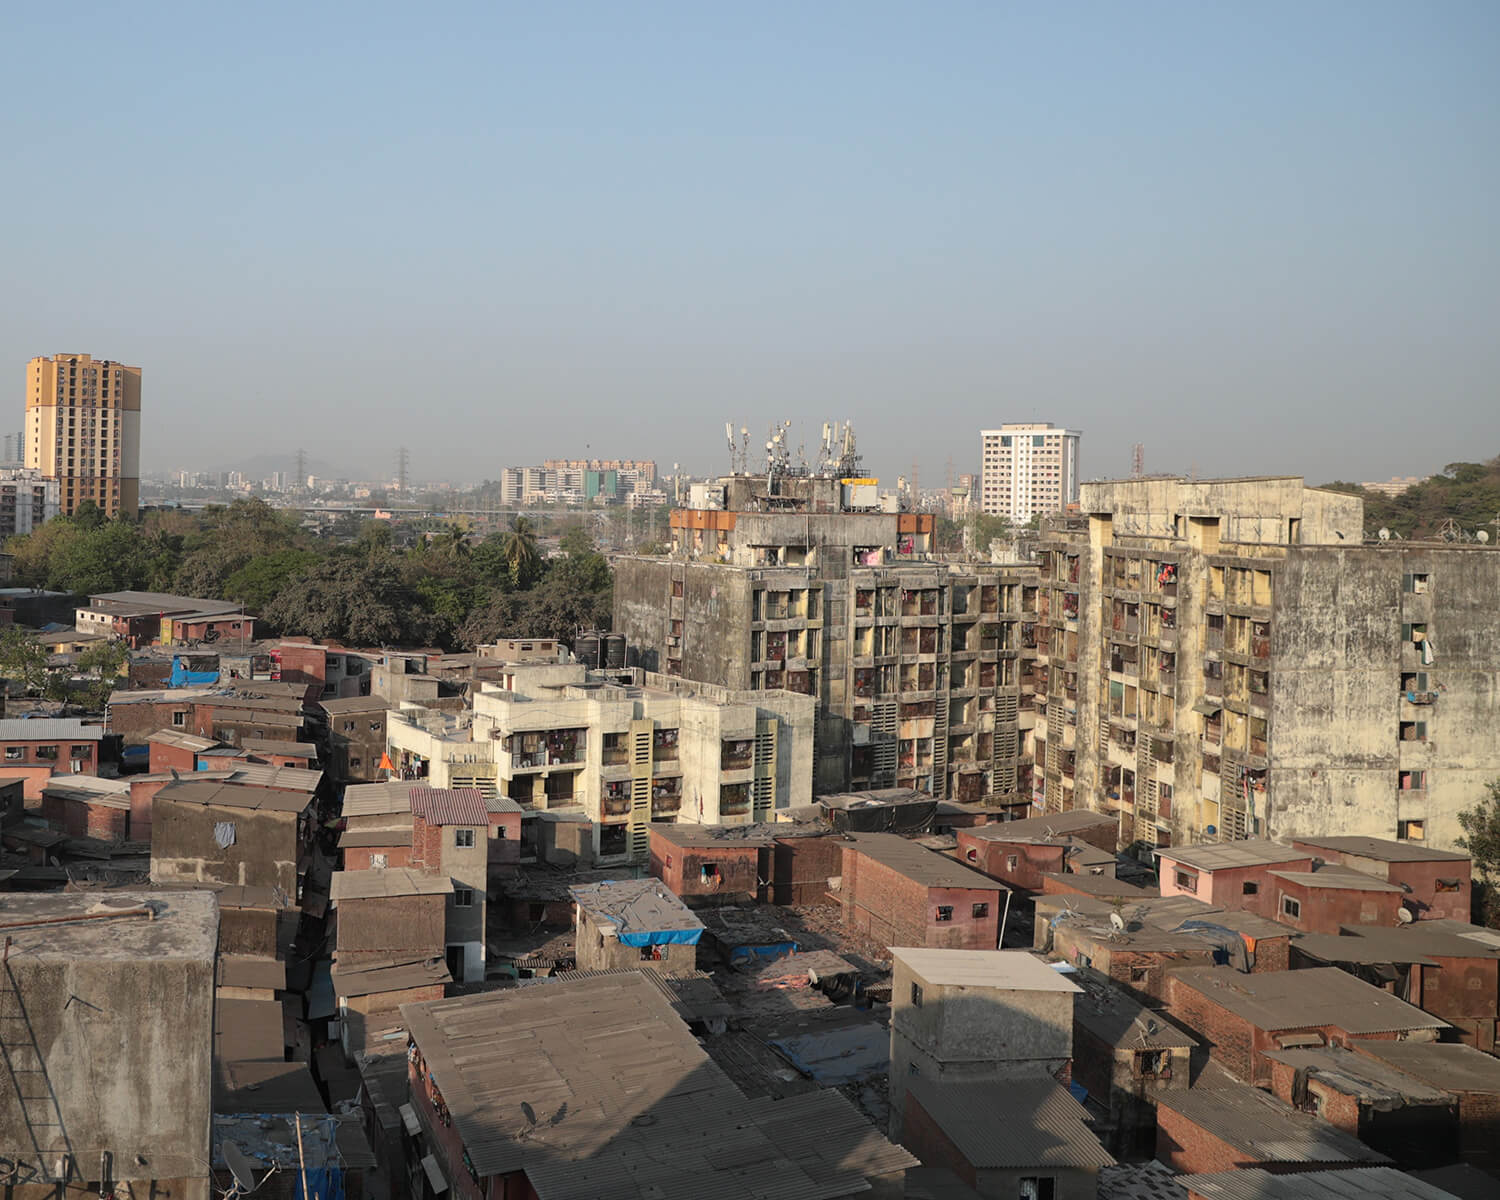 Sangam gully abutting the 90 feet road- viewed from a building top.